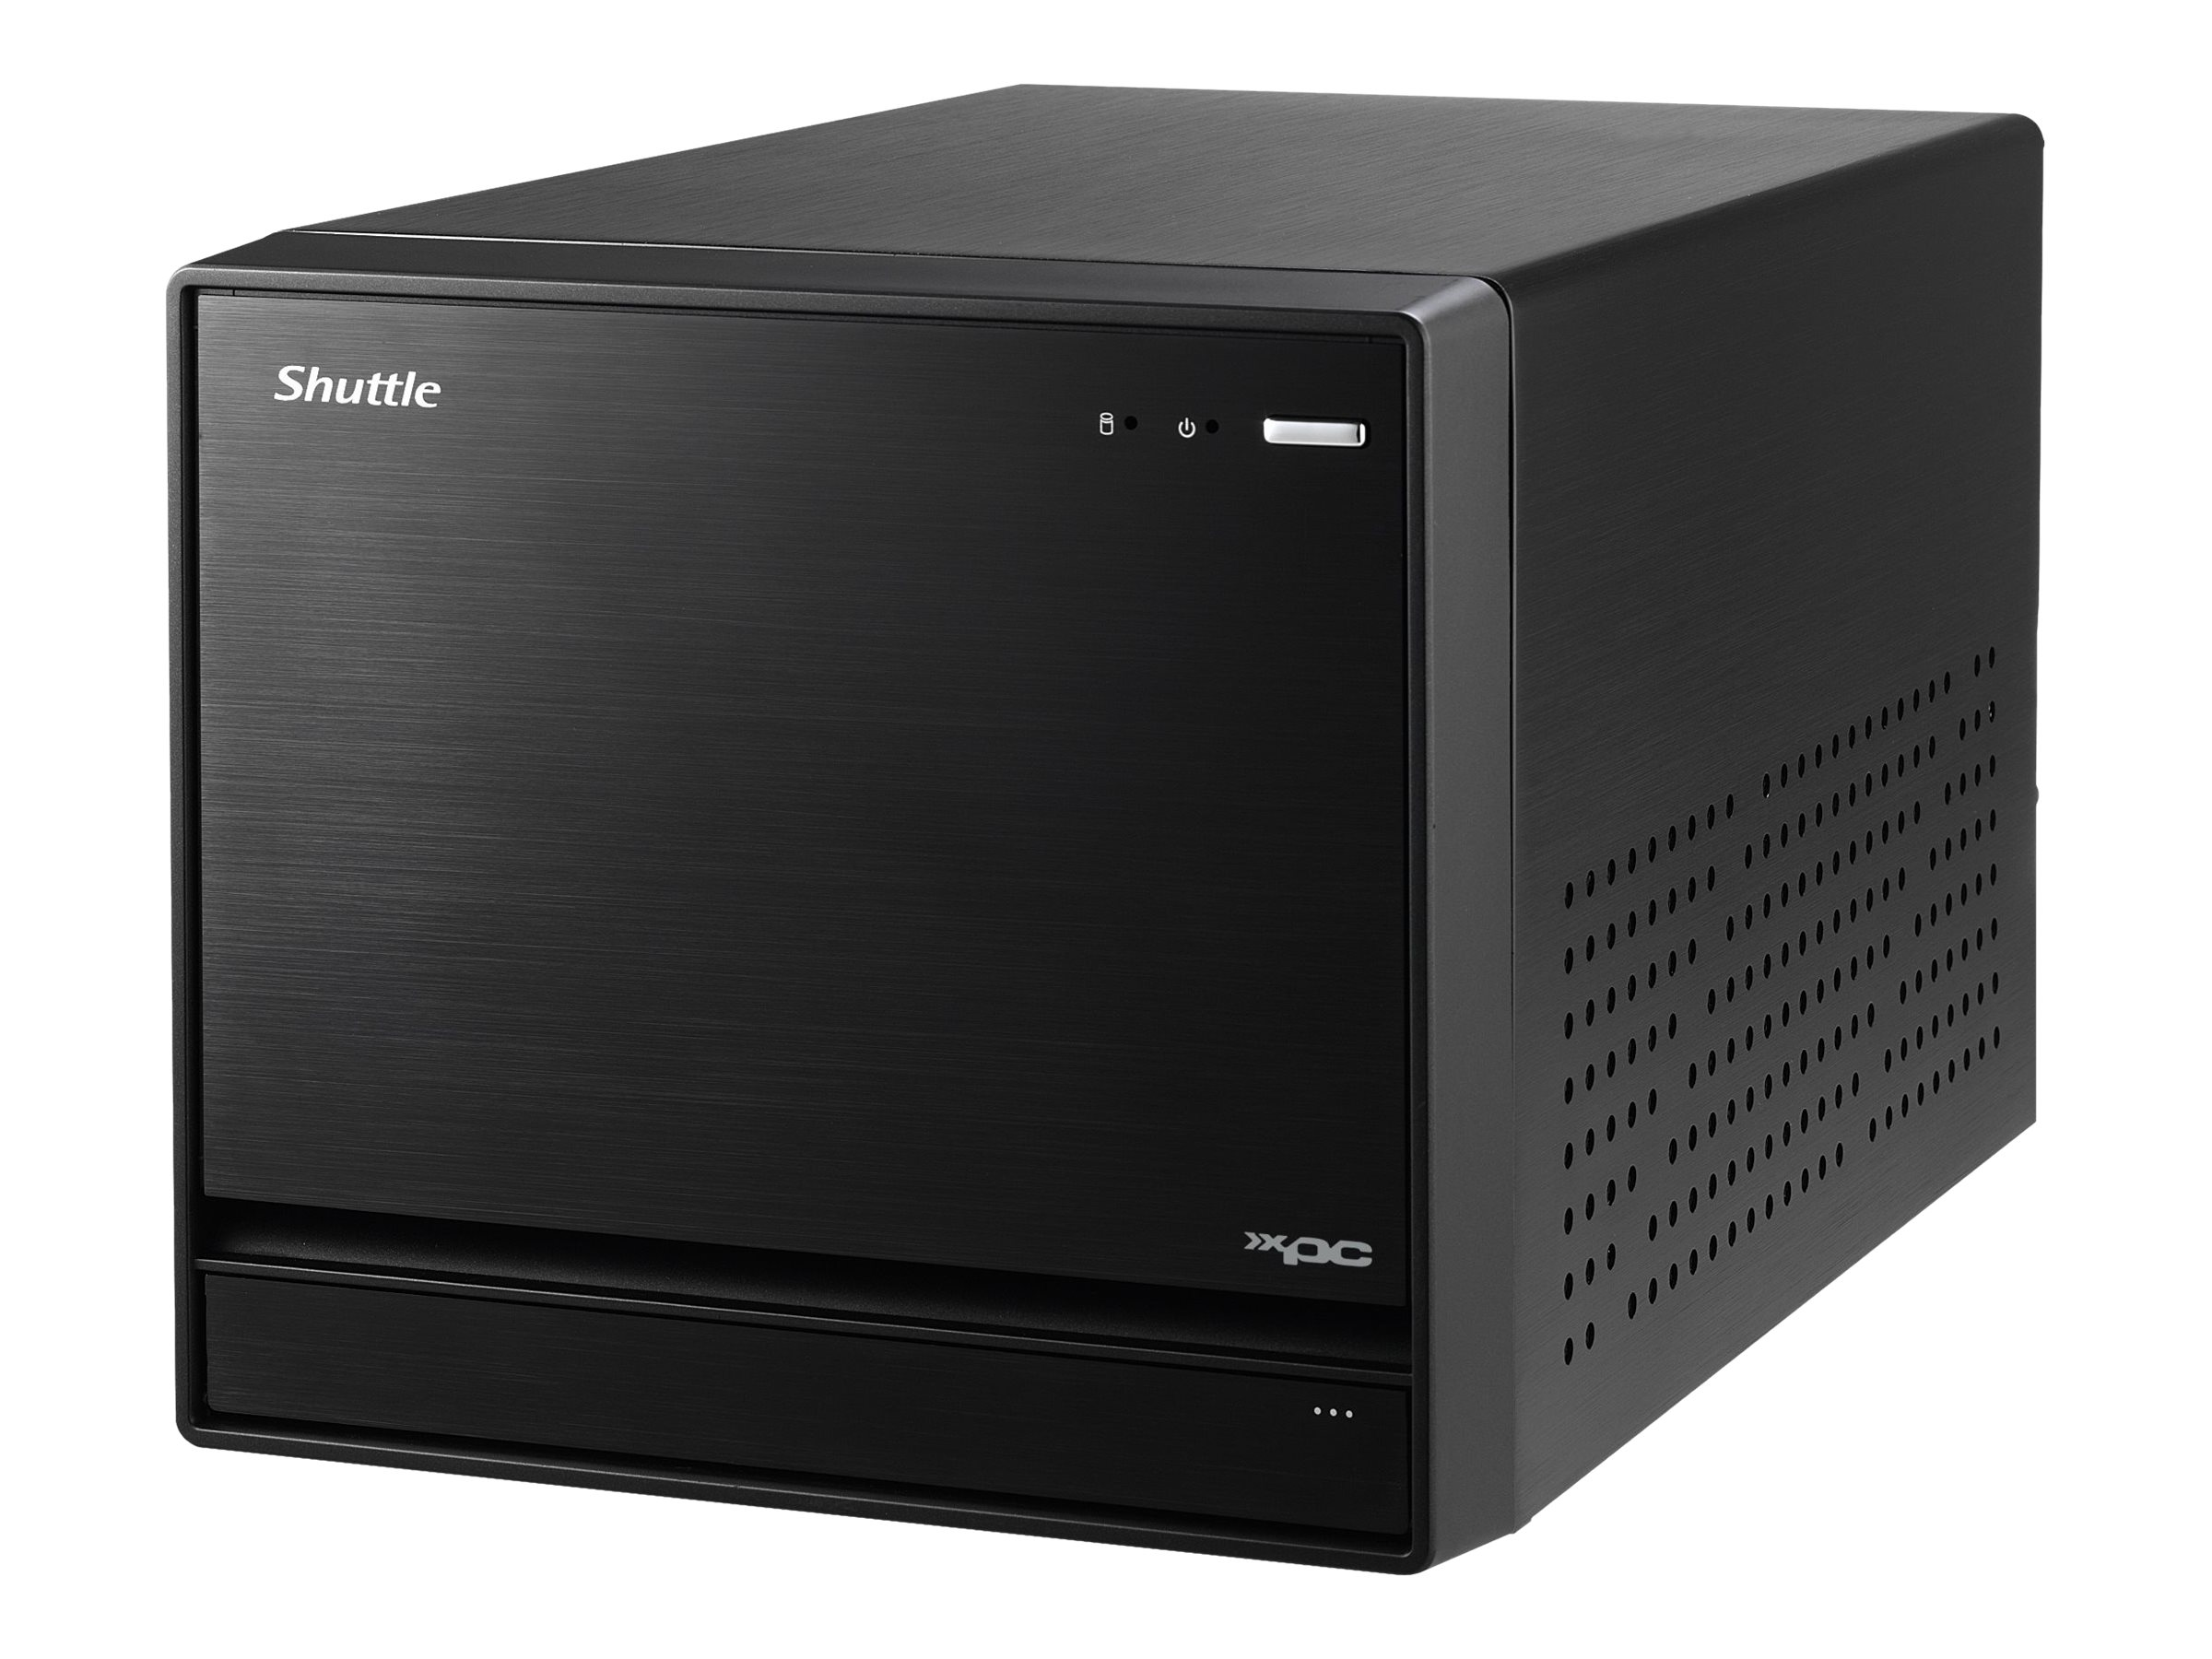 Shuttle XPC cube SH370R8 - Barebone - Mini-PC